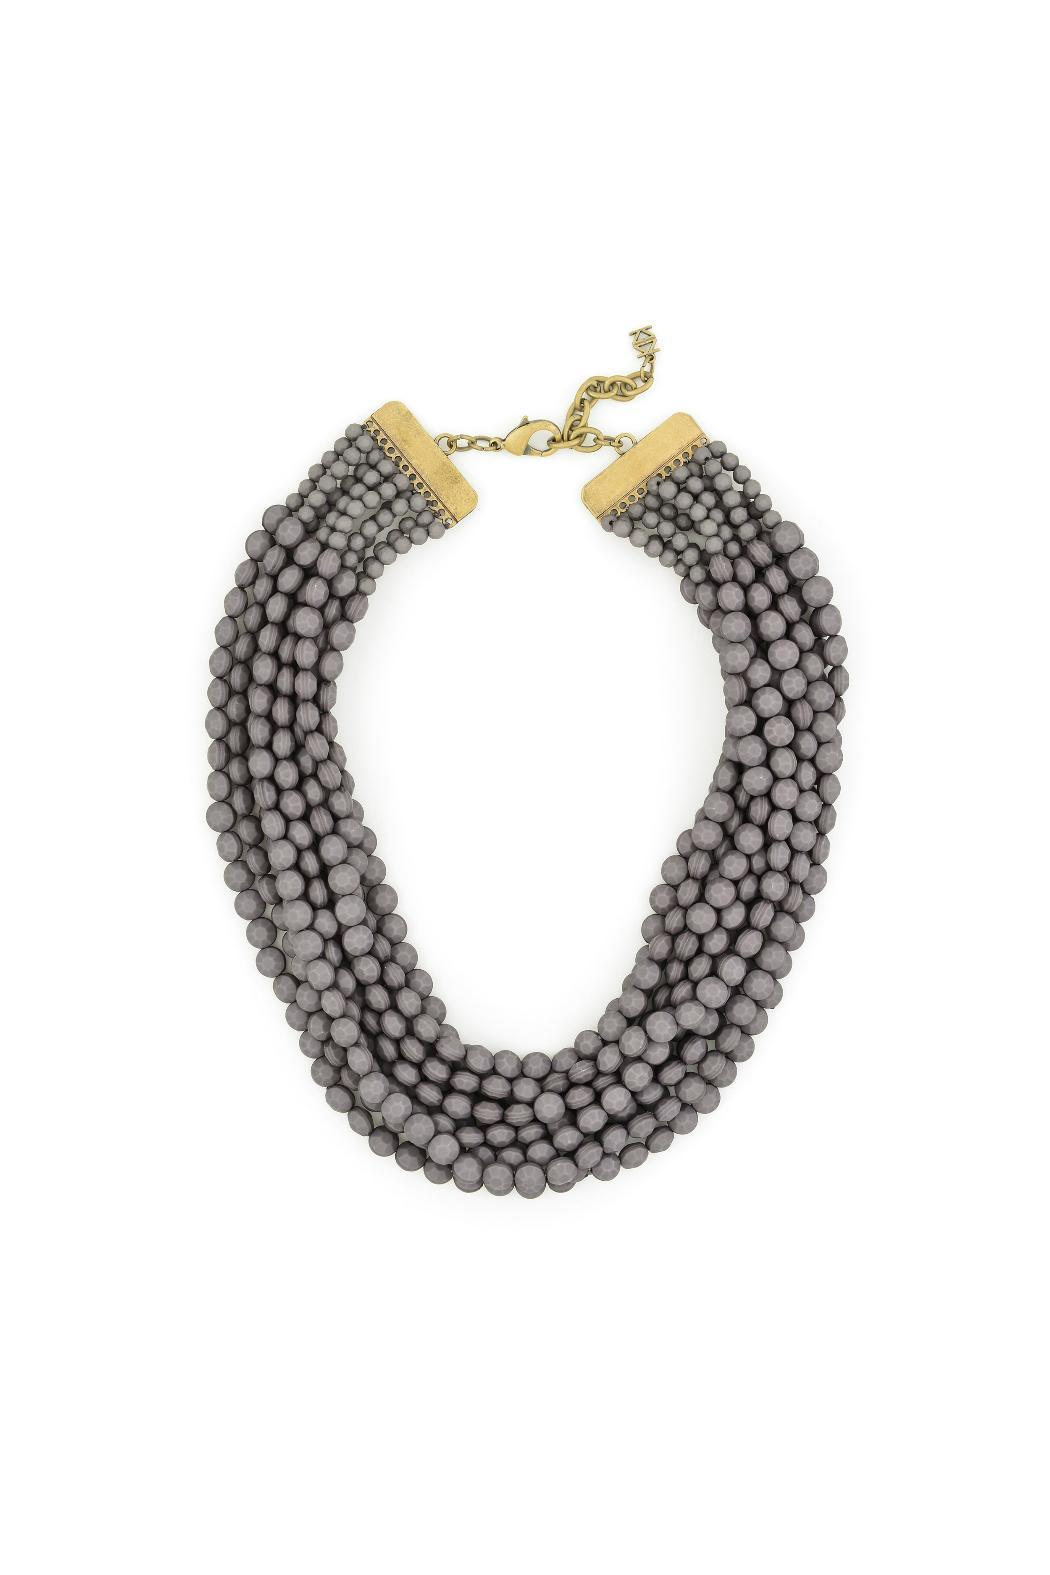 gemma collection grey bib necklace from dallas shoptiques